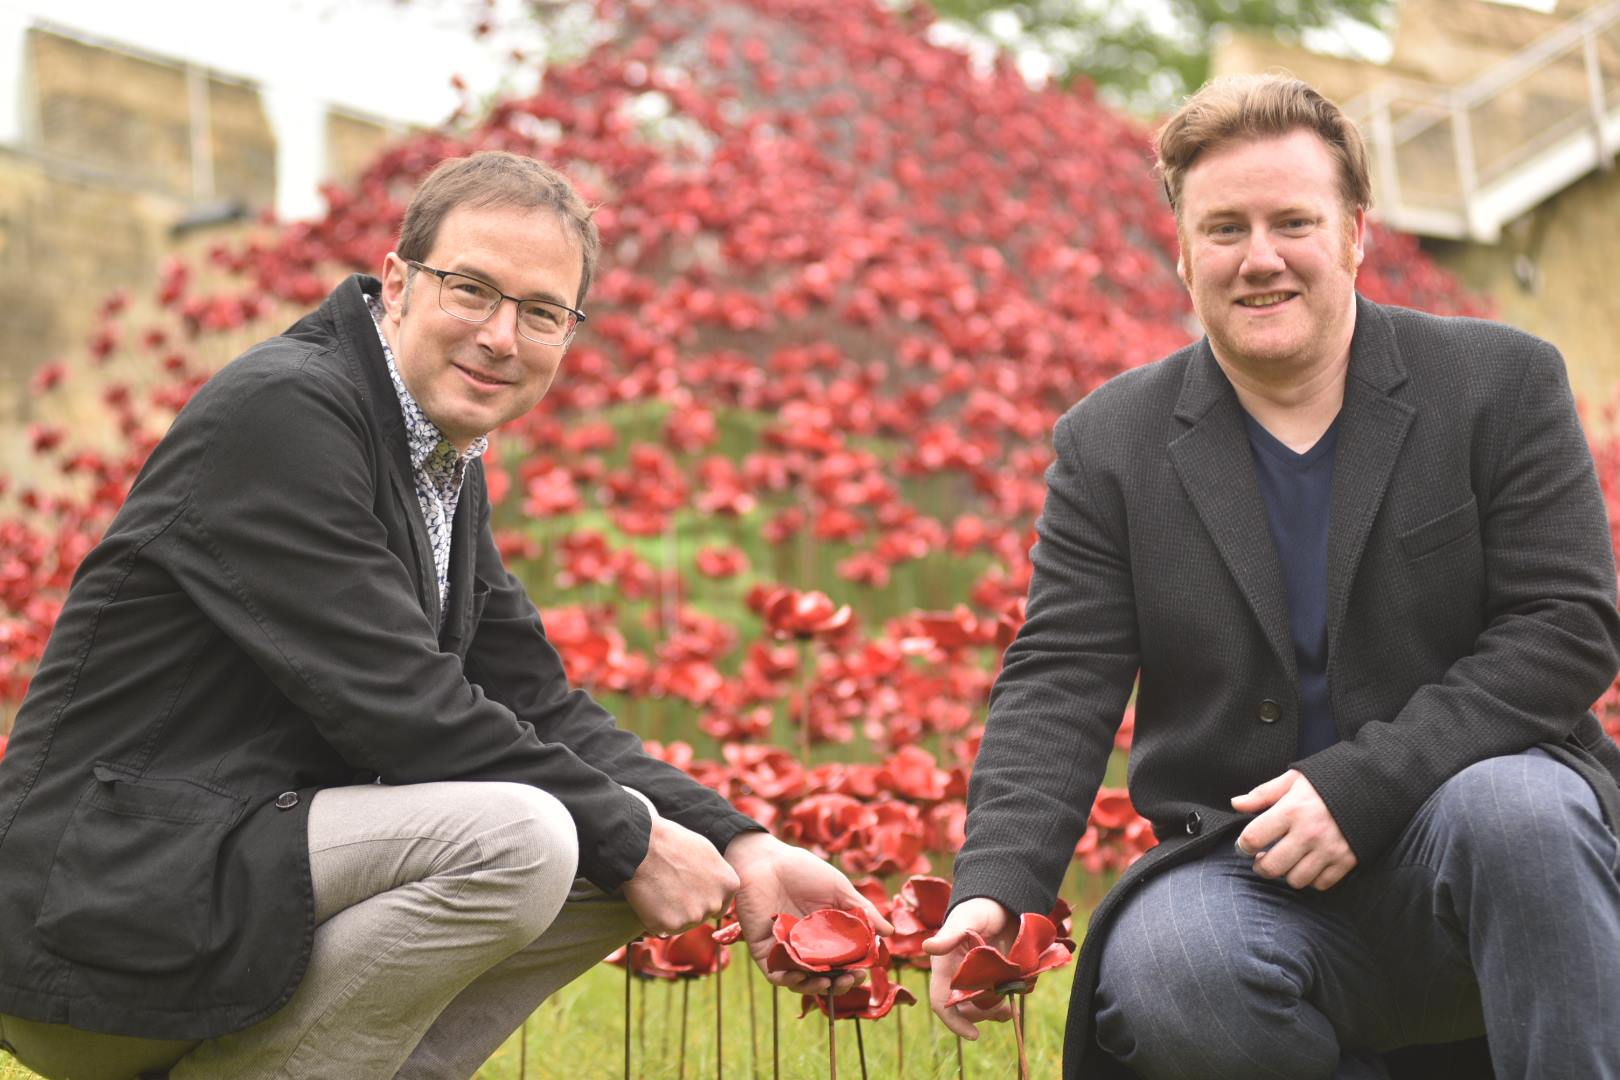 Designer Tom Piper and artist Paul Cummins at Lincoln Castle for Poppies: Wave. Photo: Steve Smailes for The Lincolnite